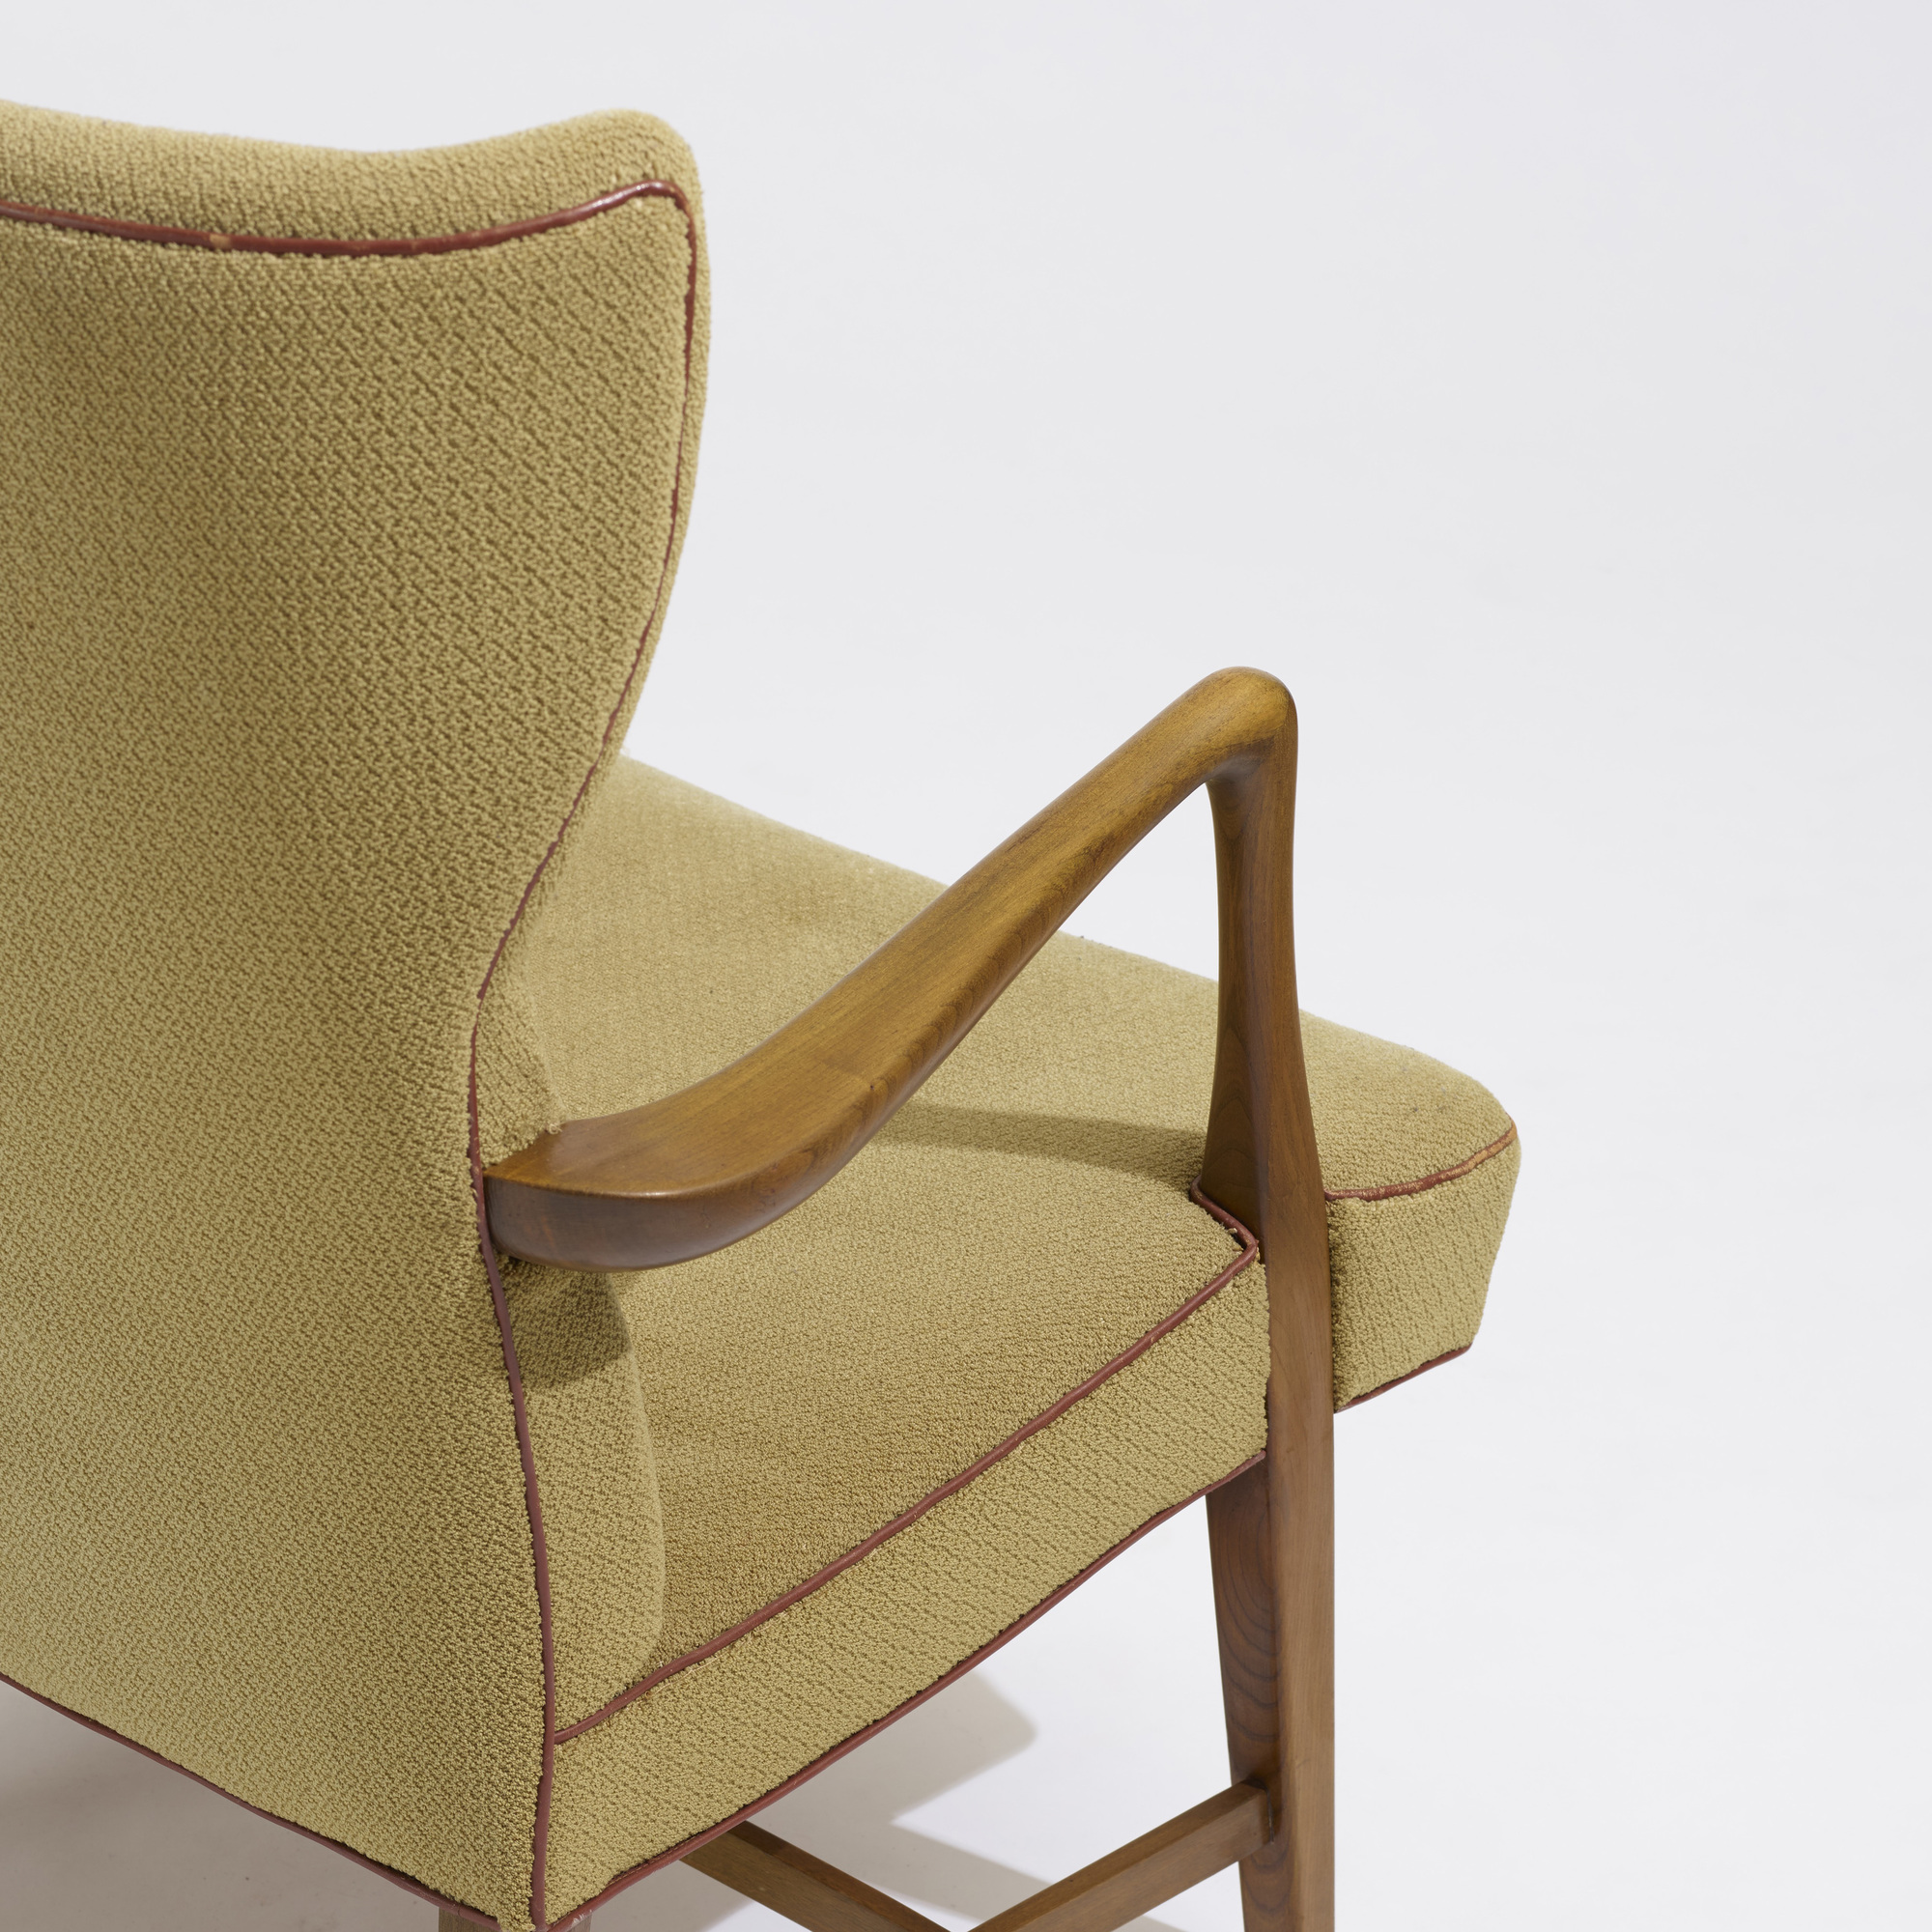 174: Peter Hvidt / lounge chair (3 of 3)